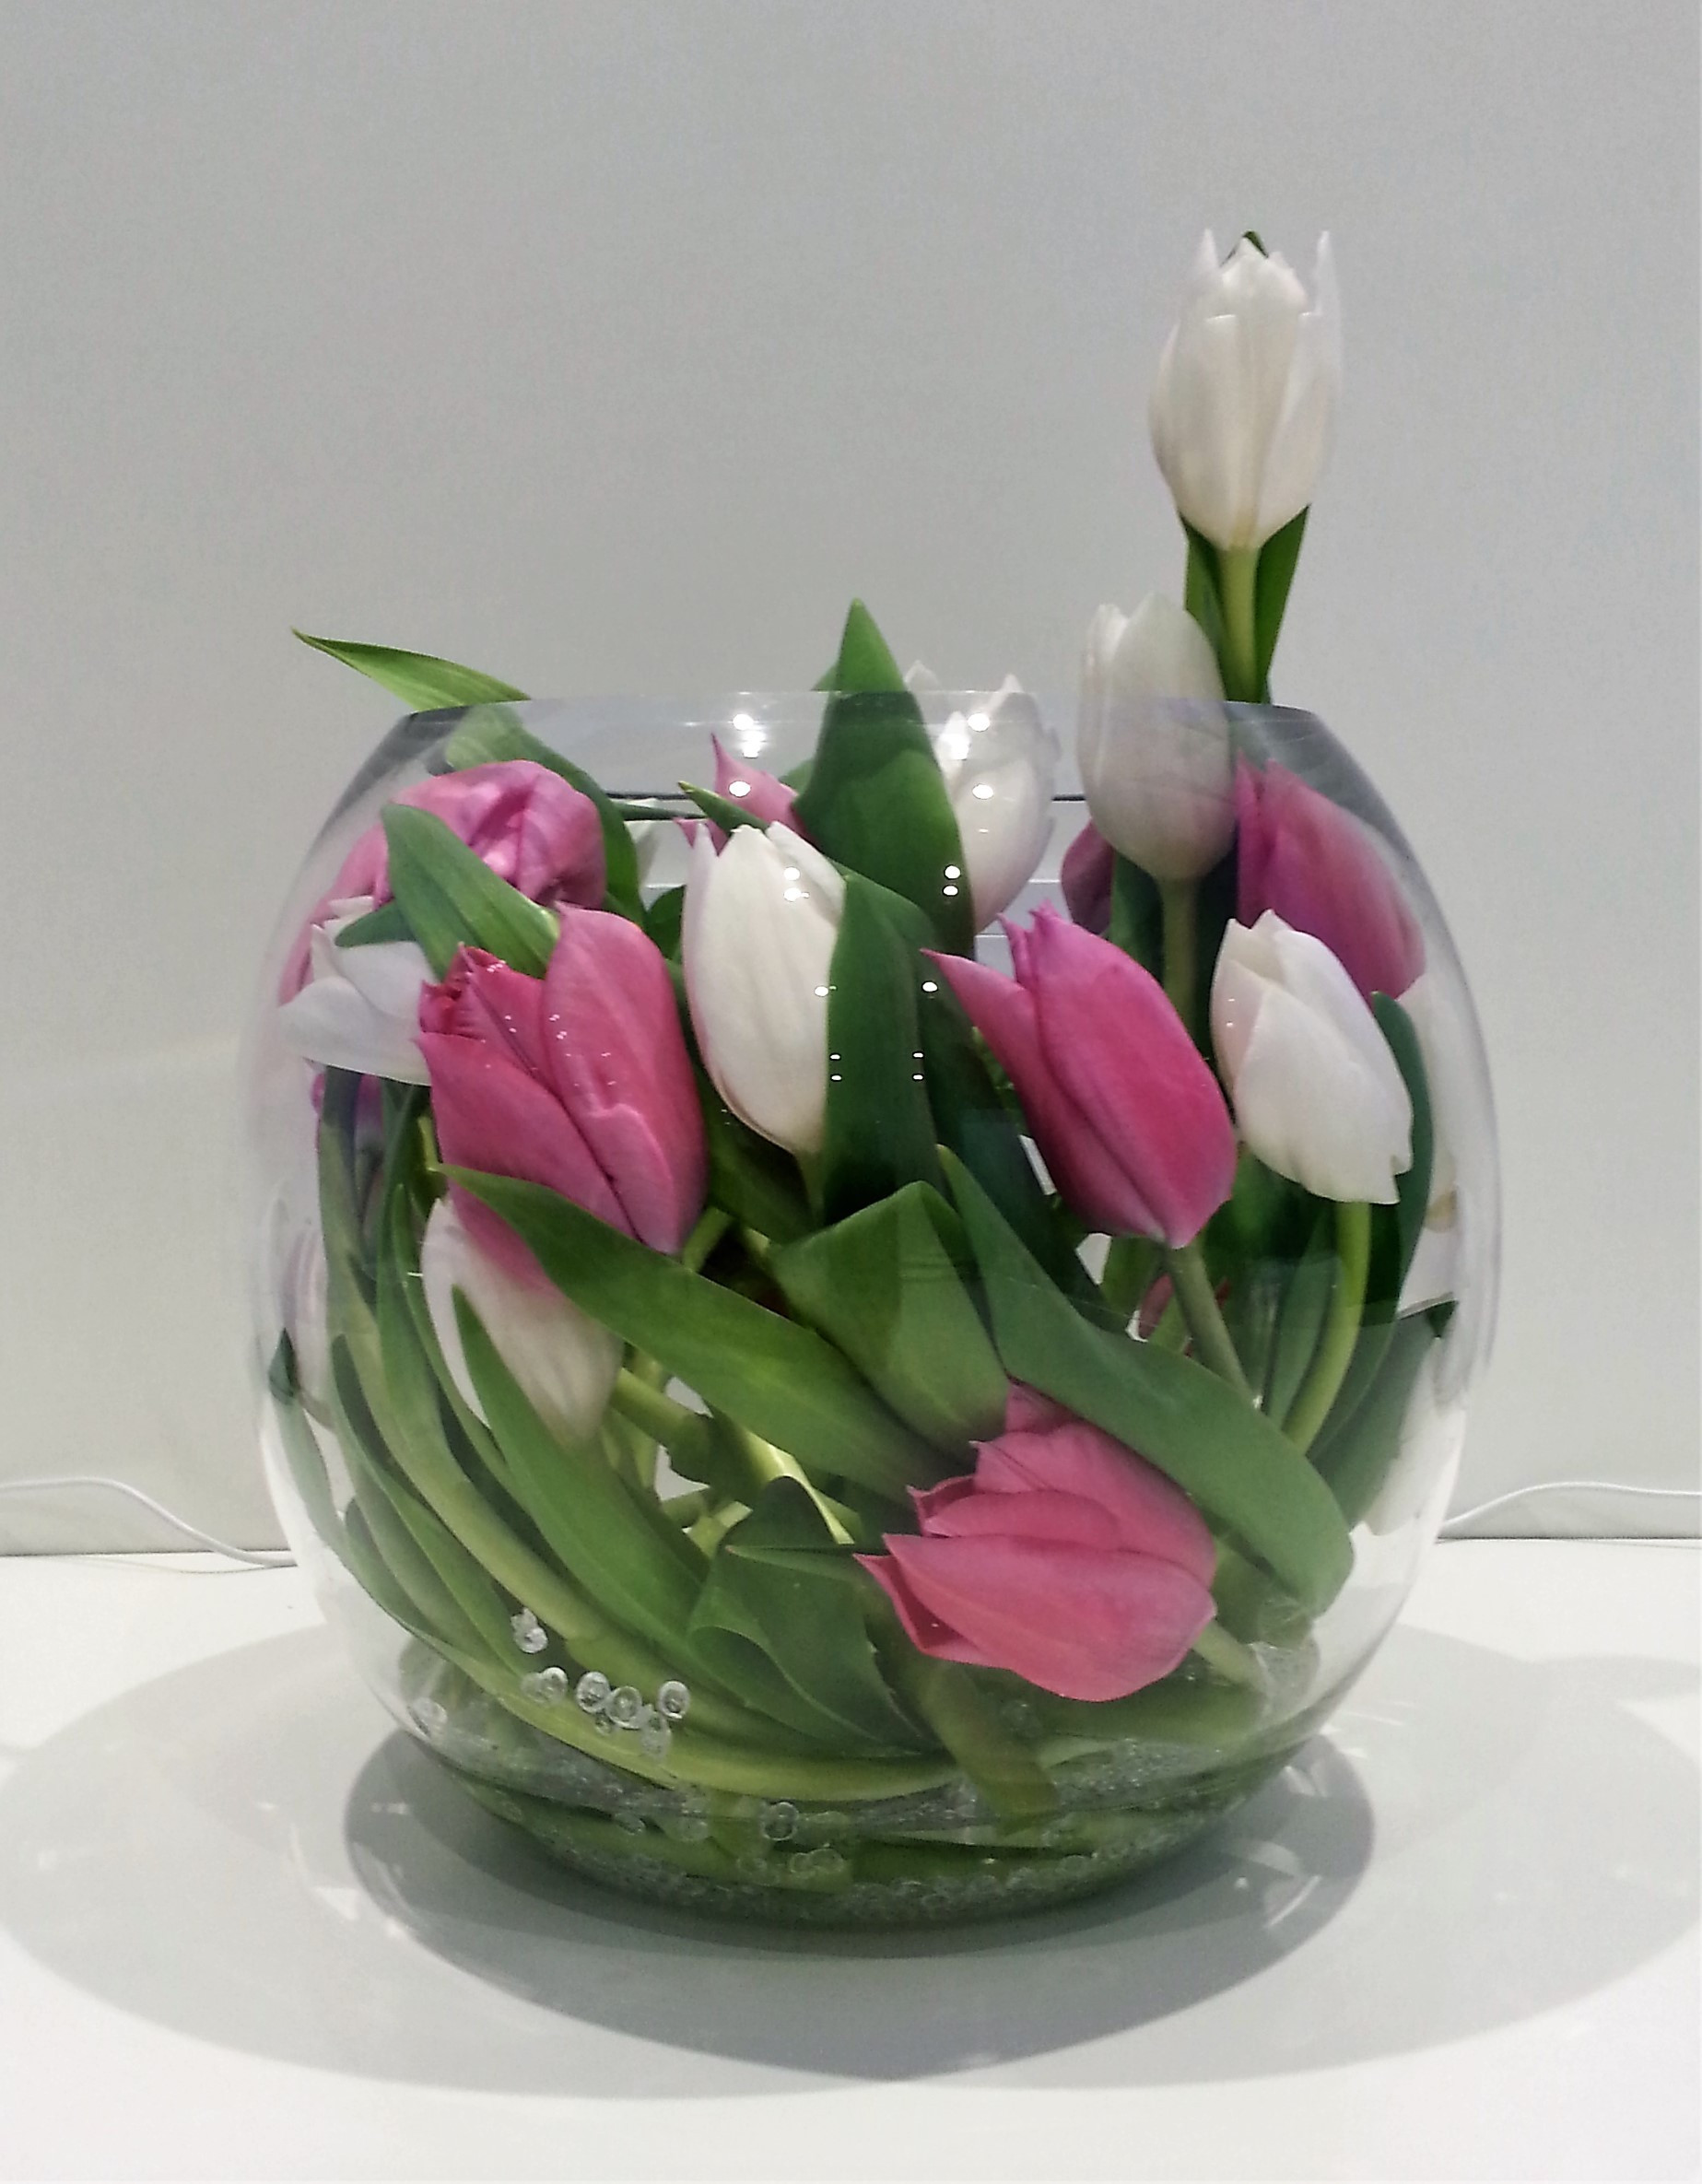 single flower vase bulk of best of wholesale flowers las vegas greengarden regarding 16pv white pink tulip encased in gold fish bowl with clear beads